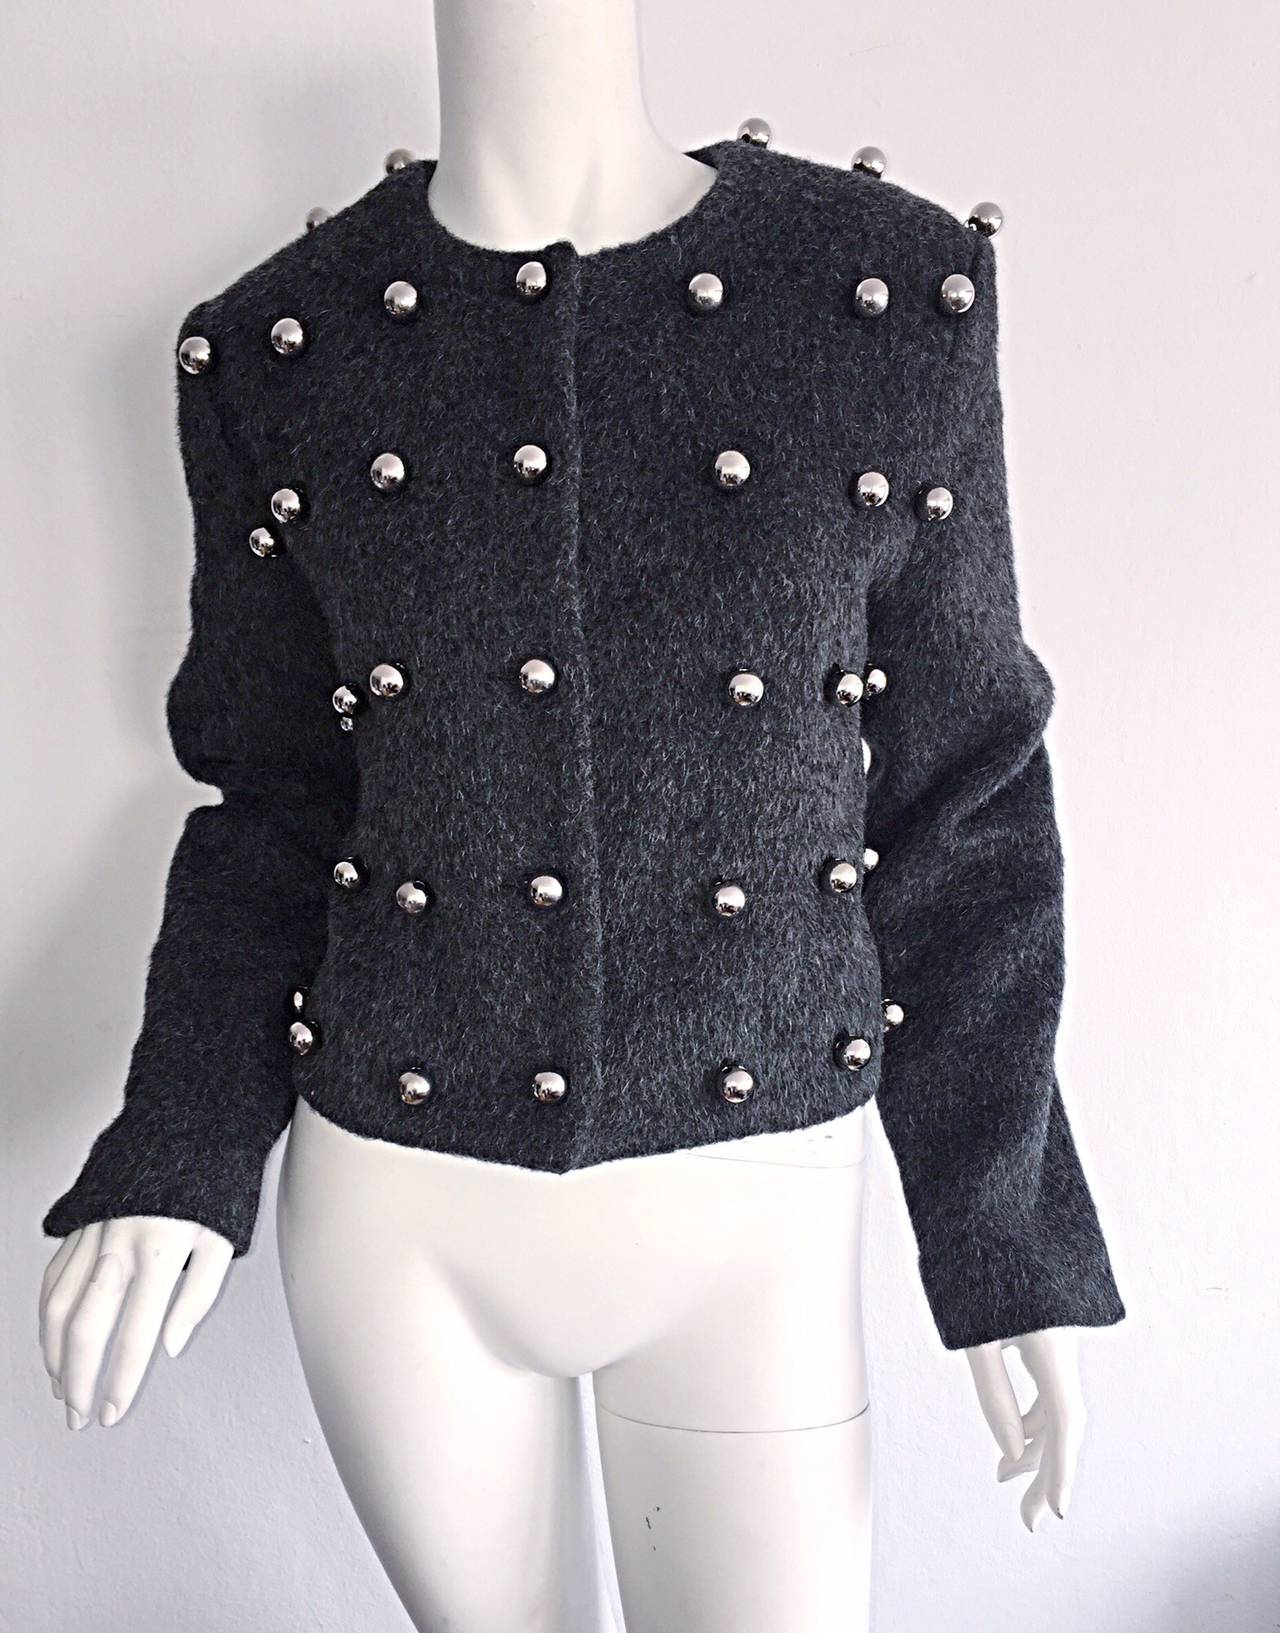 Black Vintage Patrick Kelly Charcoal Gray 3 - D Silver Ball Jacket For Sale